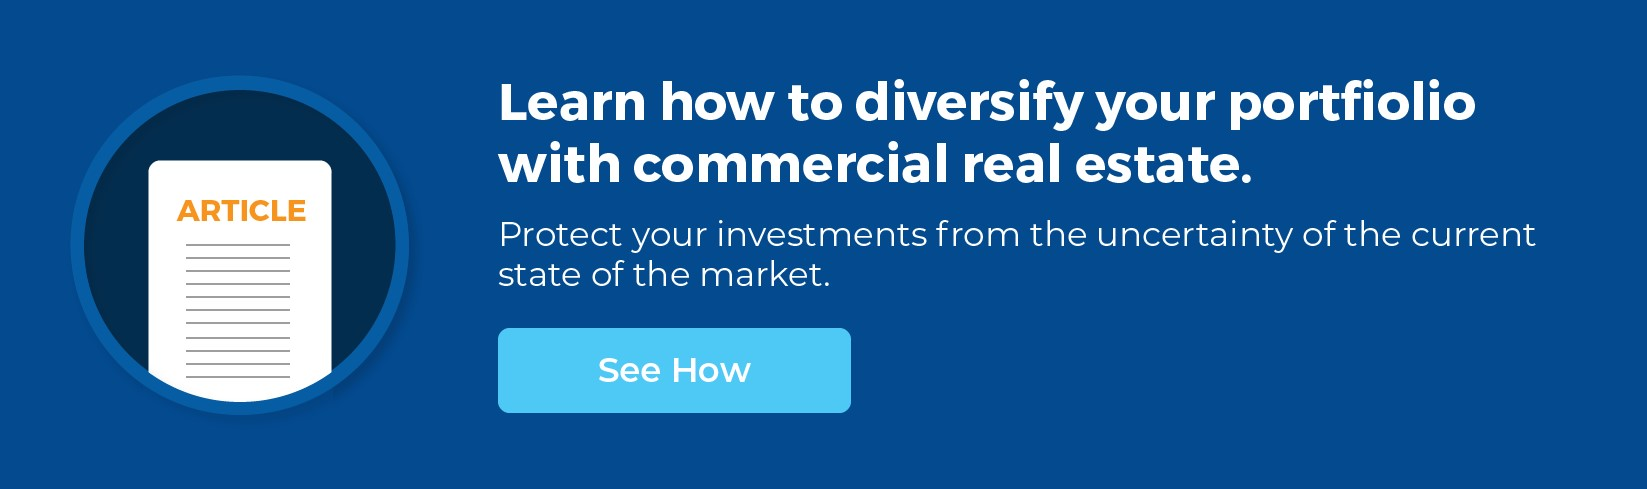 7-data-points-to-consider-when-investing-in-commercial-real-estate-04